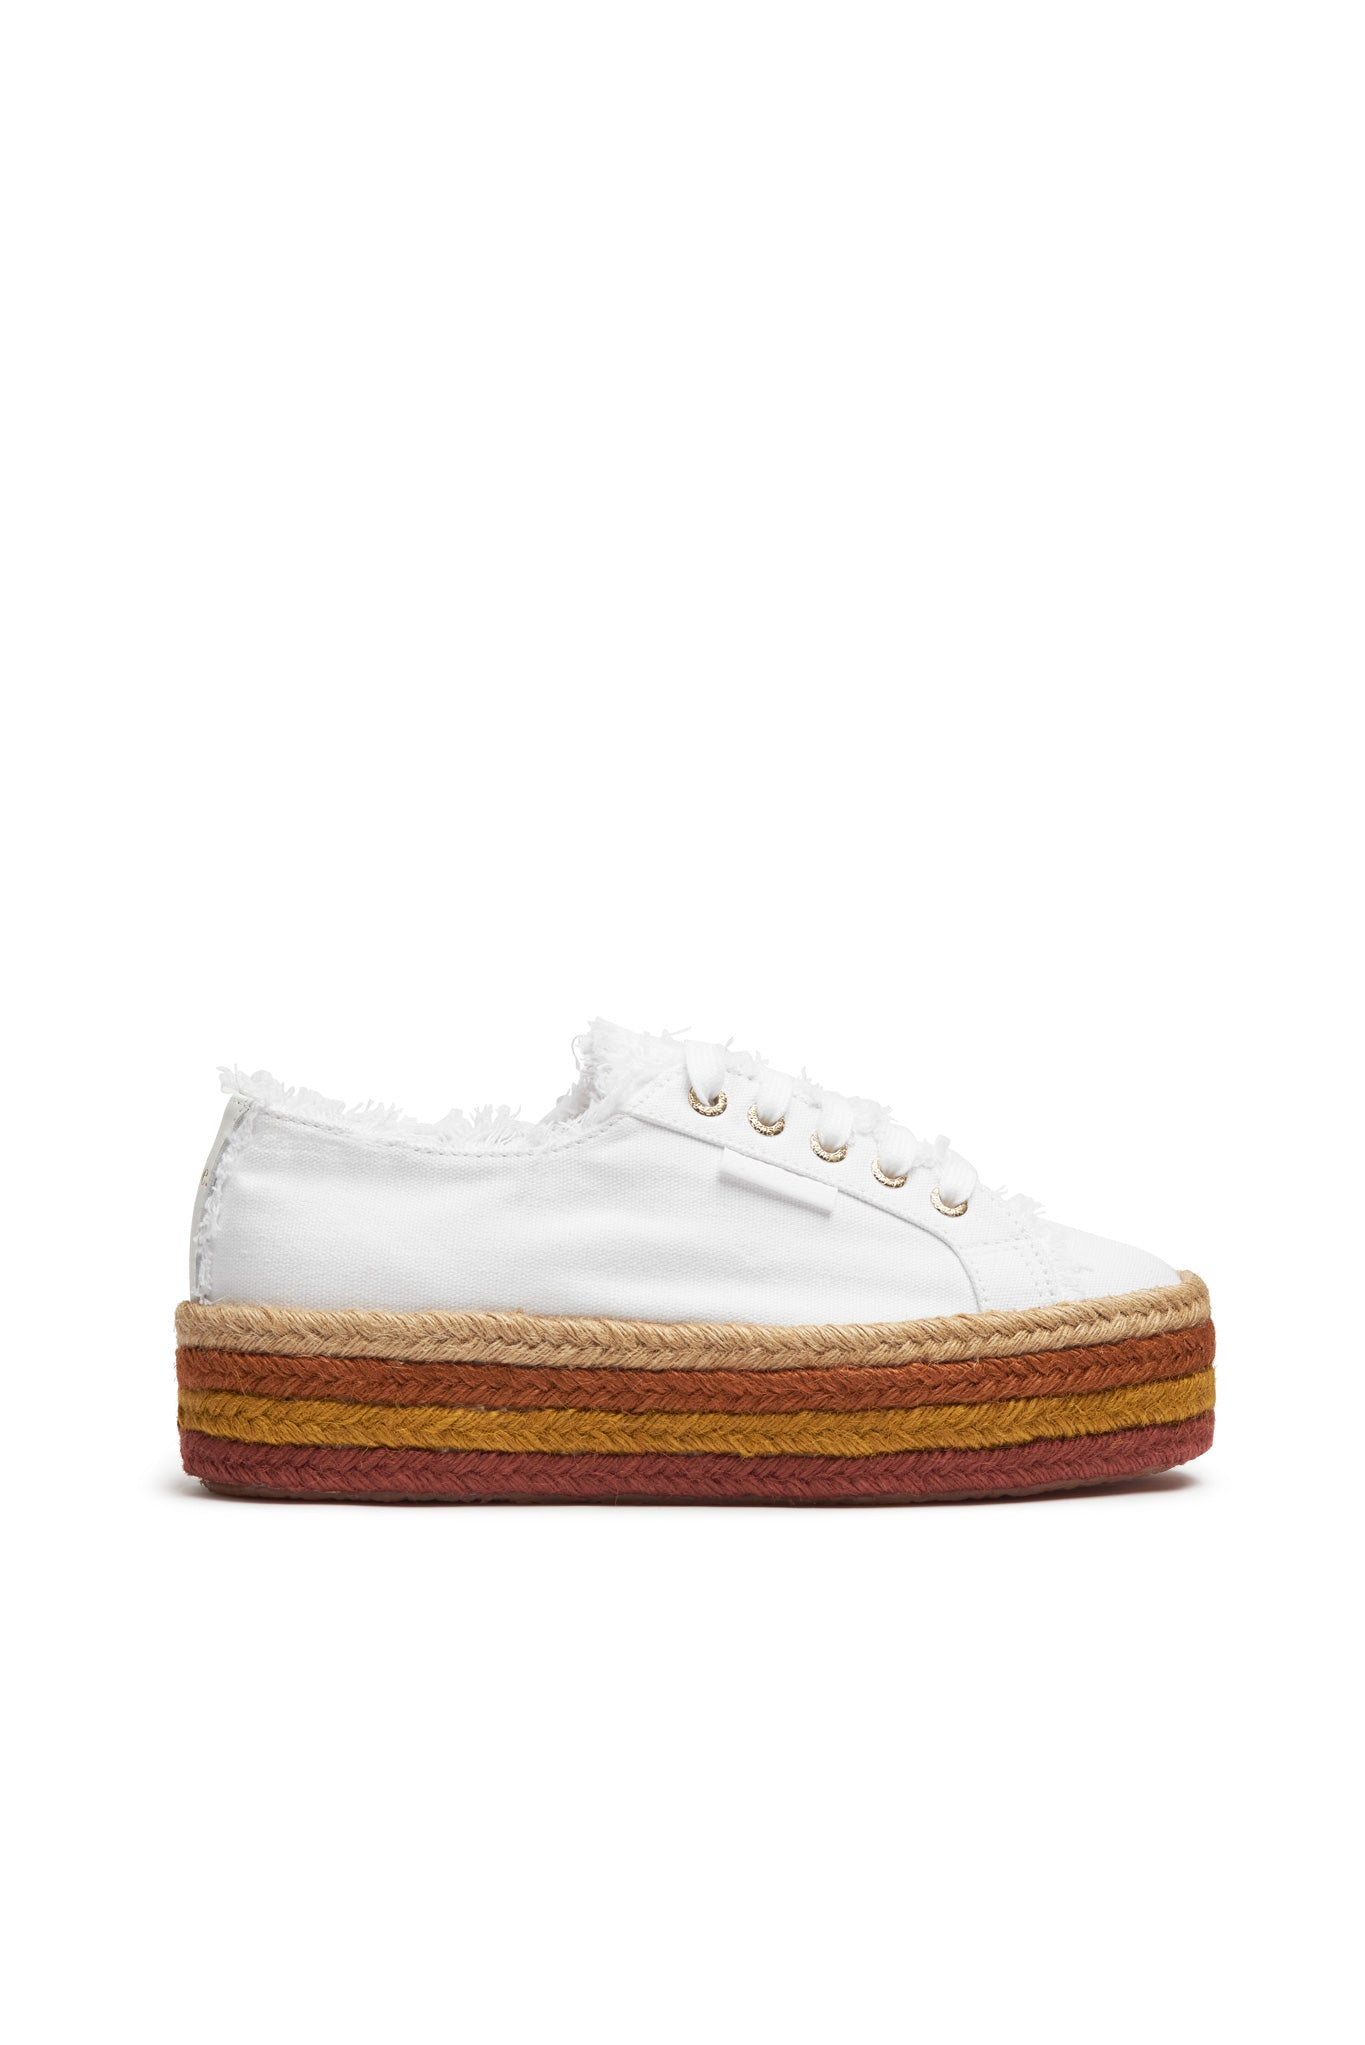 Aje x Superga Stripe Platform Product View